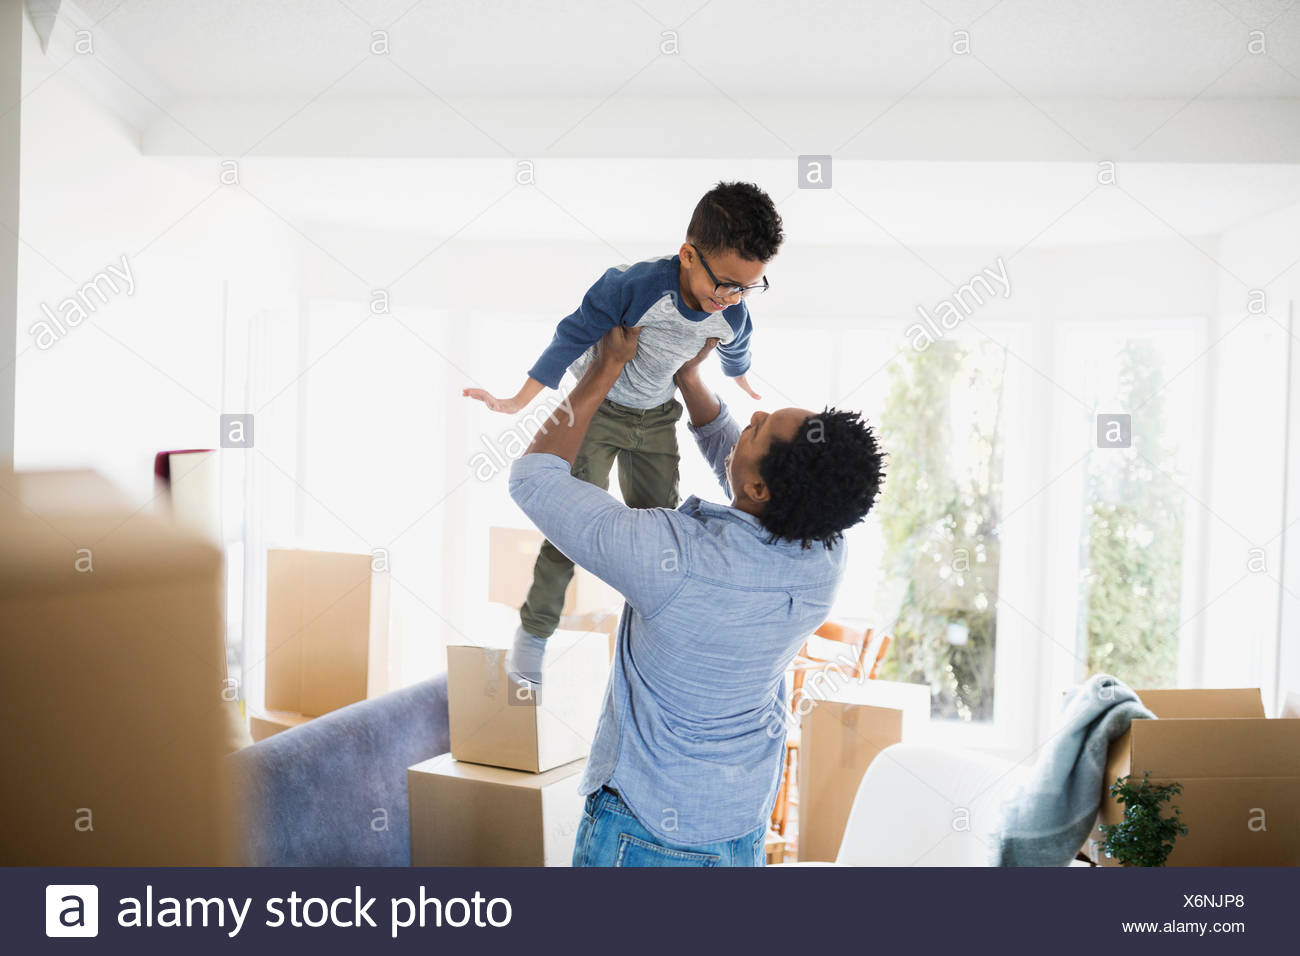 Moving boxes surrounding father lifting son - Stock Image